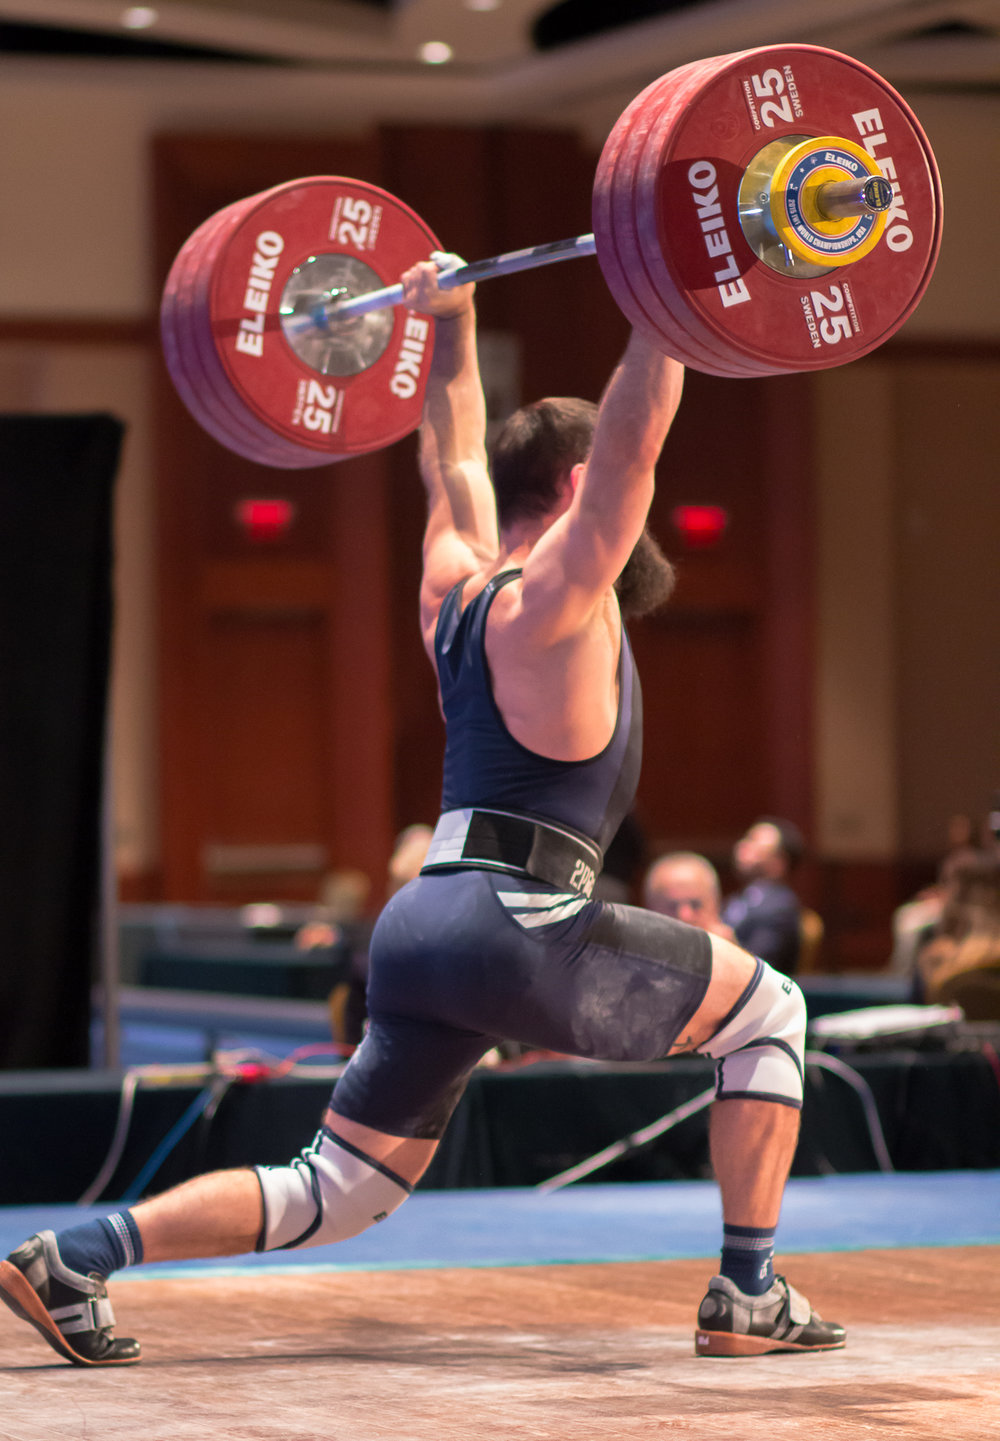 session-a-favorites-american-open-2016-weightlifting-photography (36 of 38).jpg